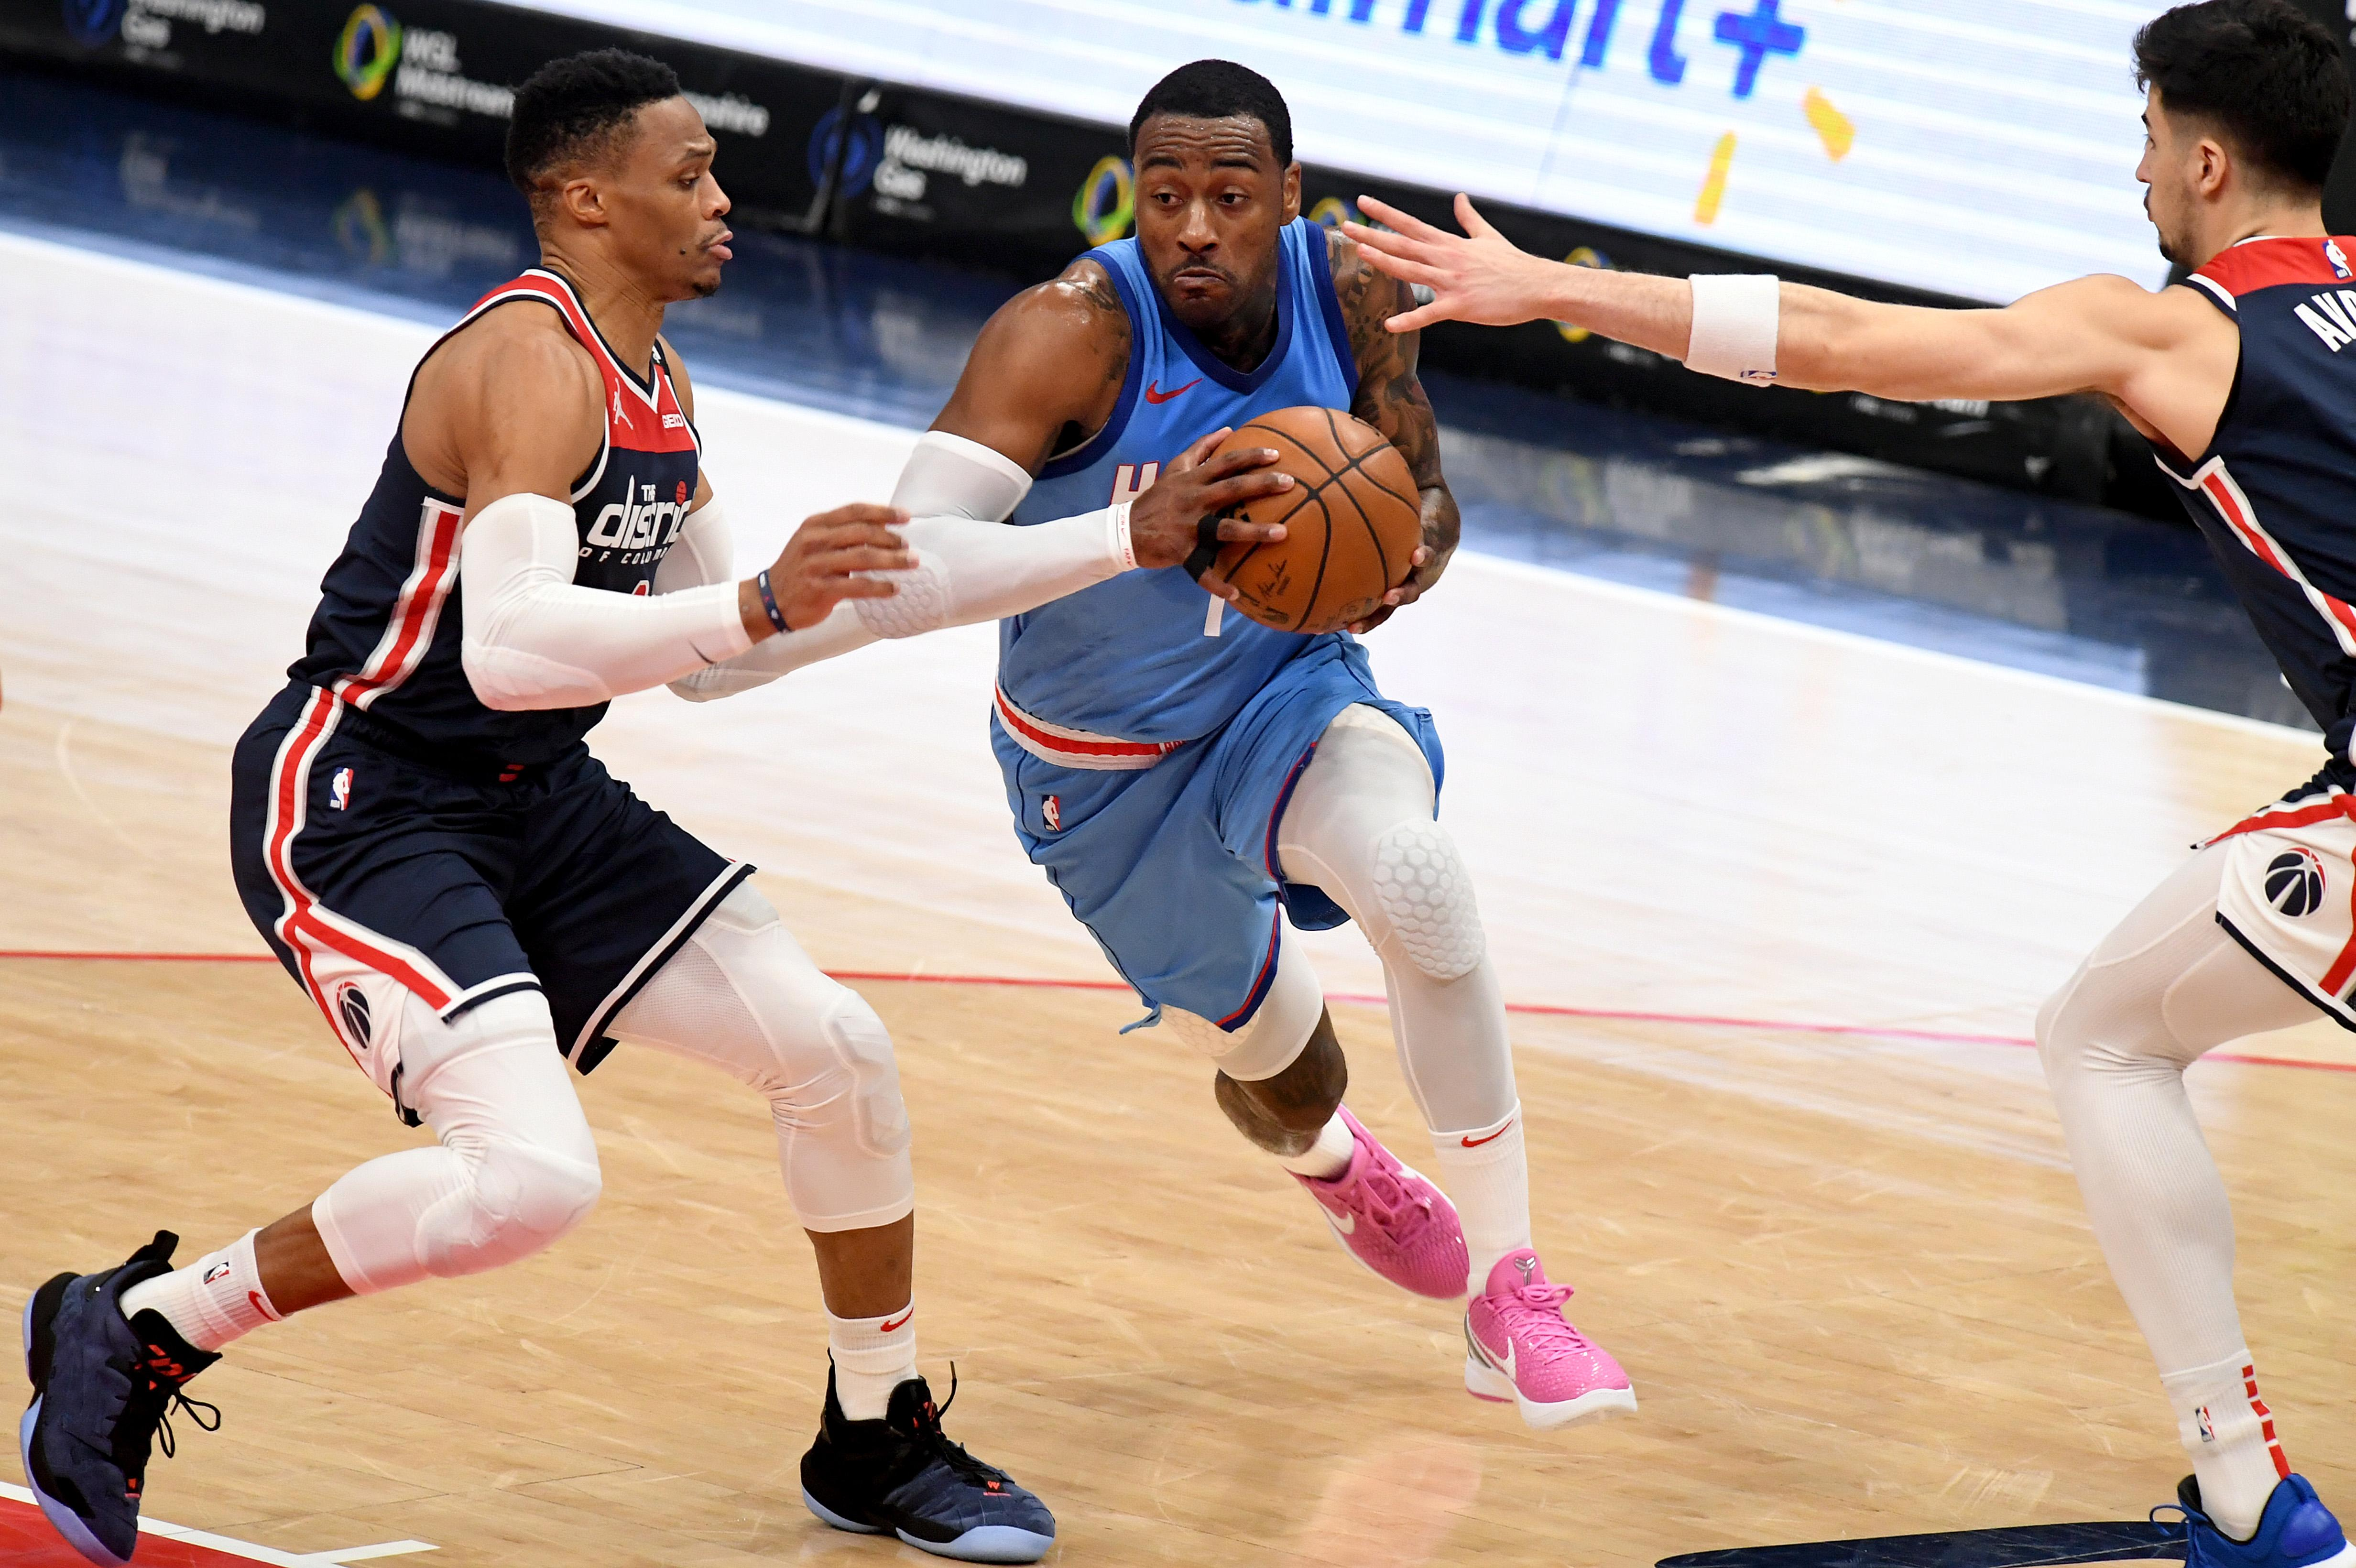 John Wall #1 of the Houston Rockets dribbles in front of Russell Westbrook #4 of the Washington Wizards